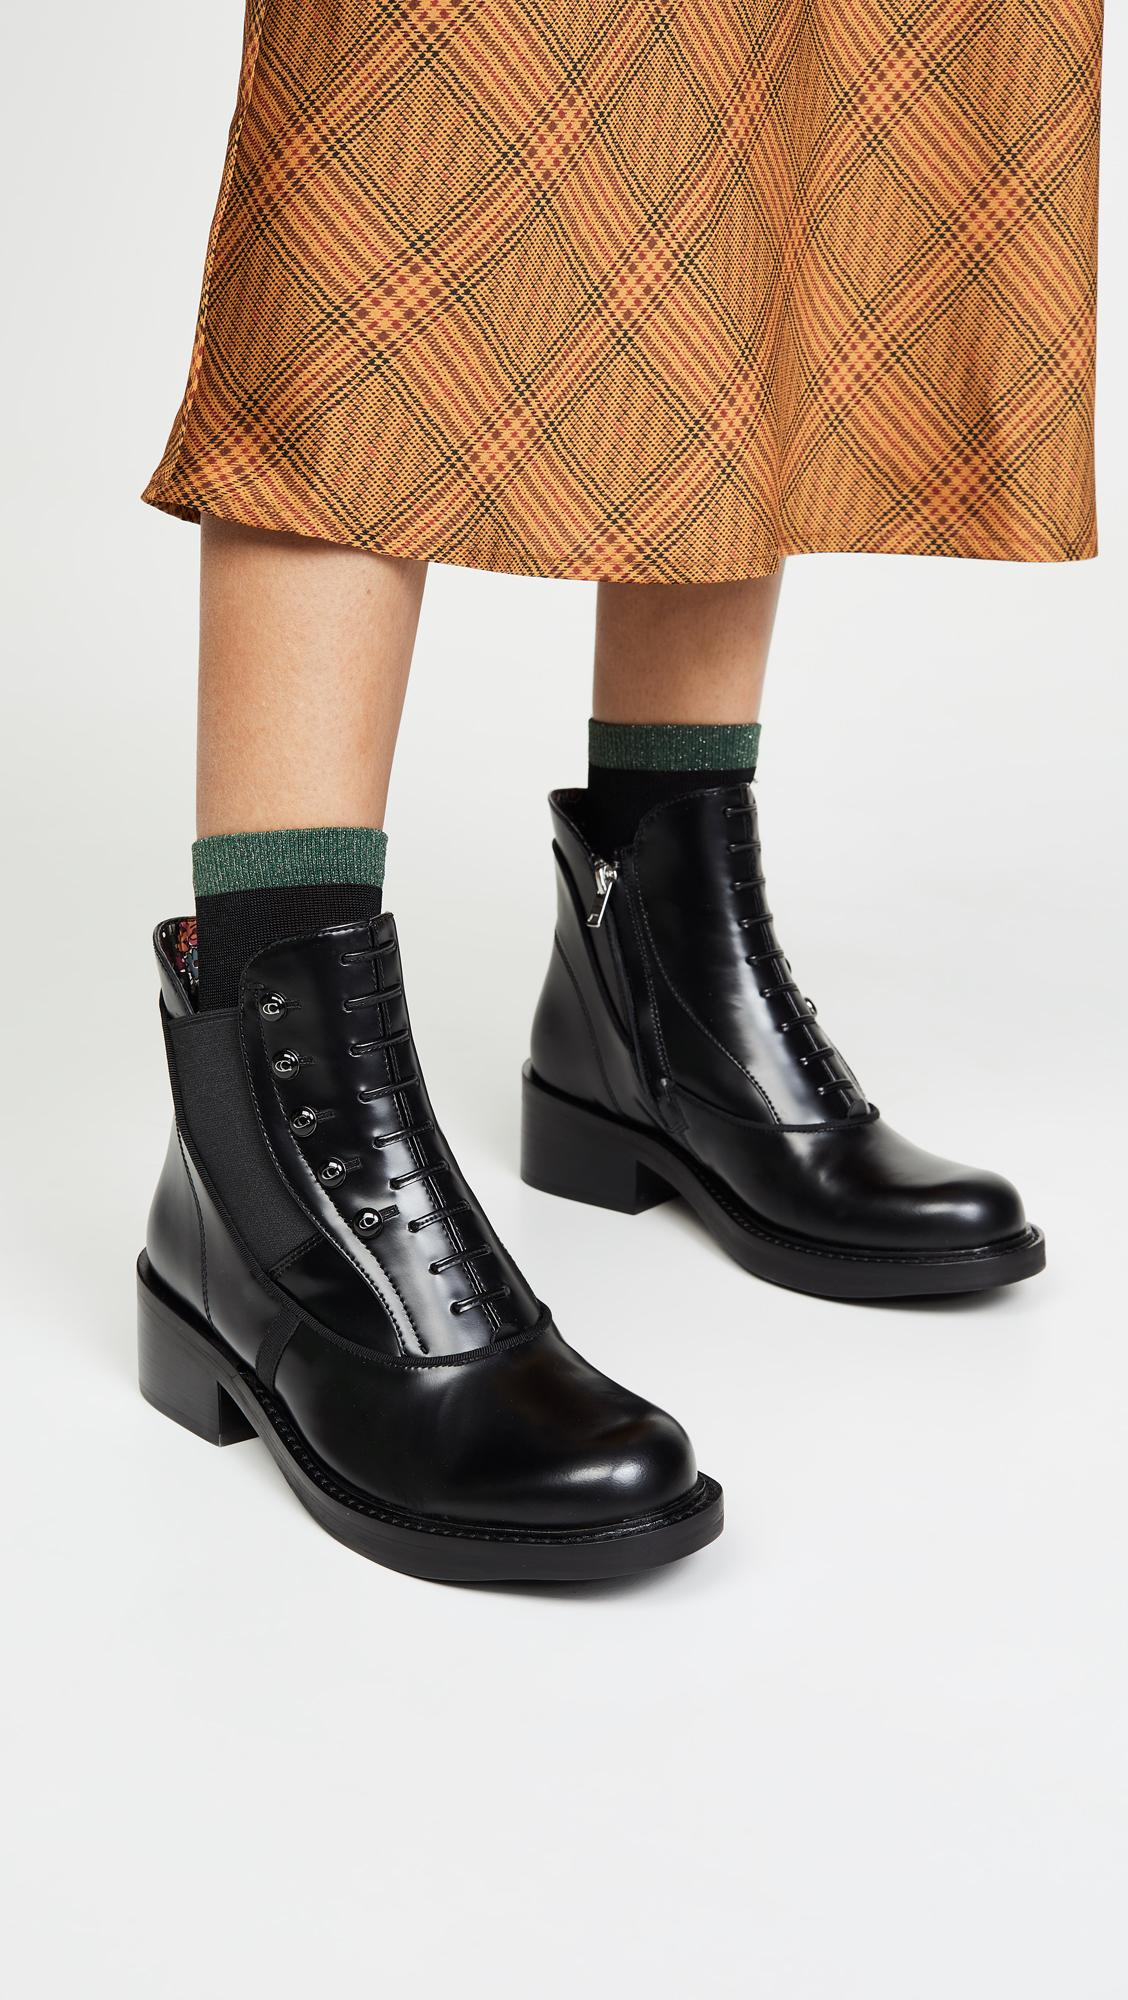 Coach Leather X Tabitha Simmons Chelsea Moto Booties In